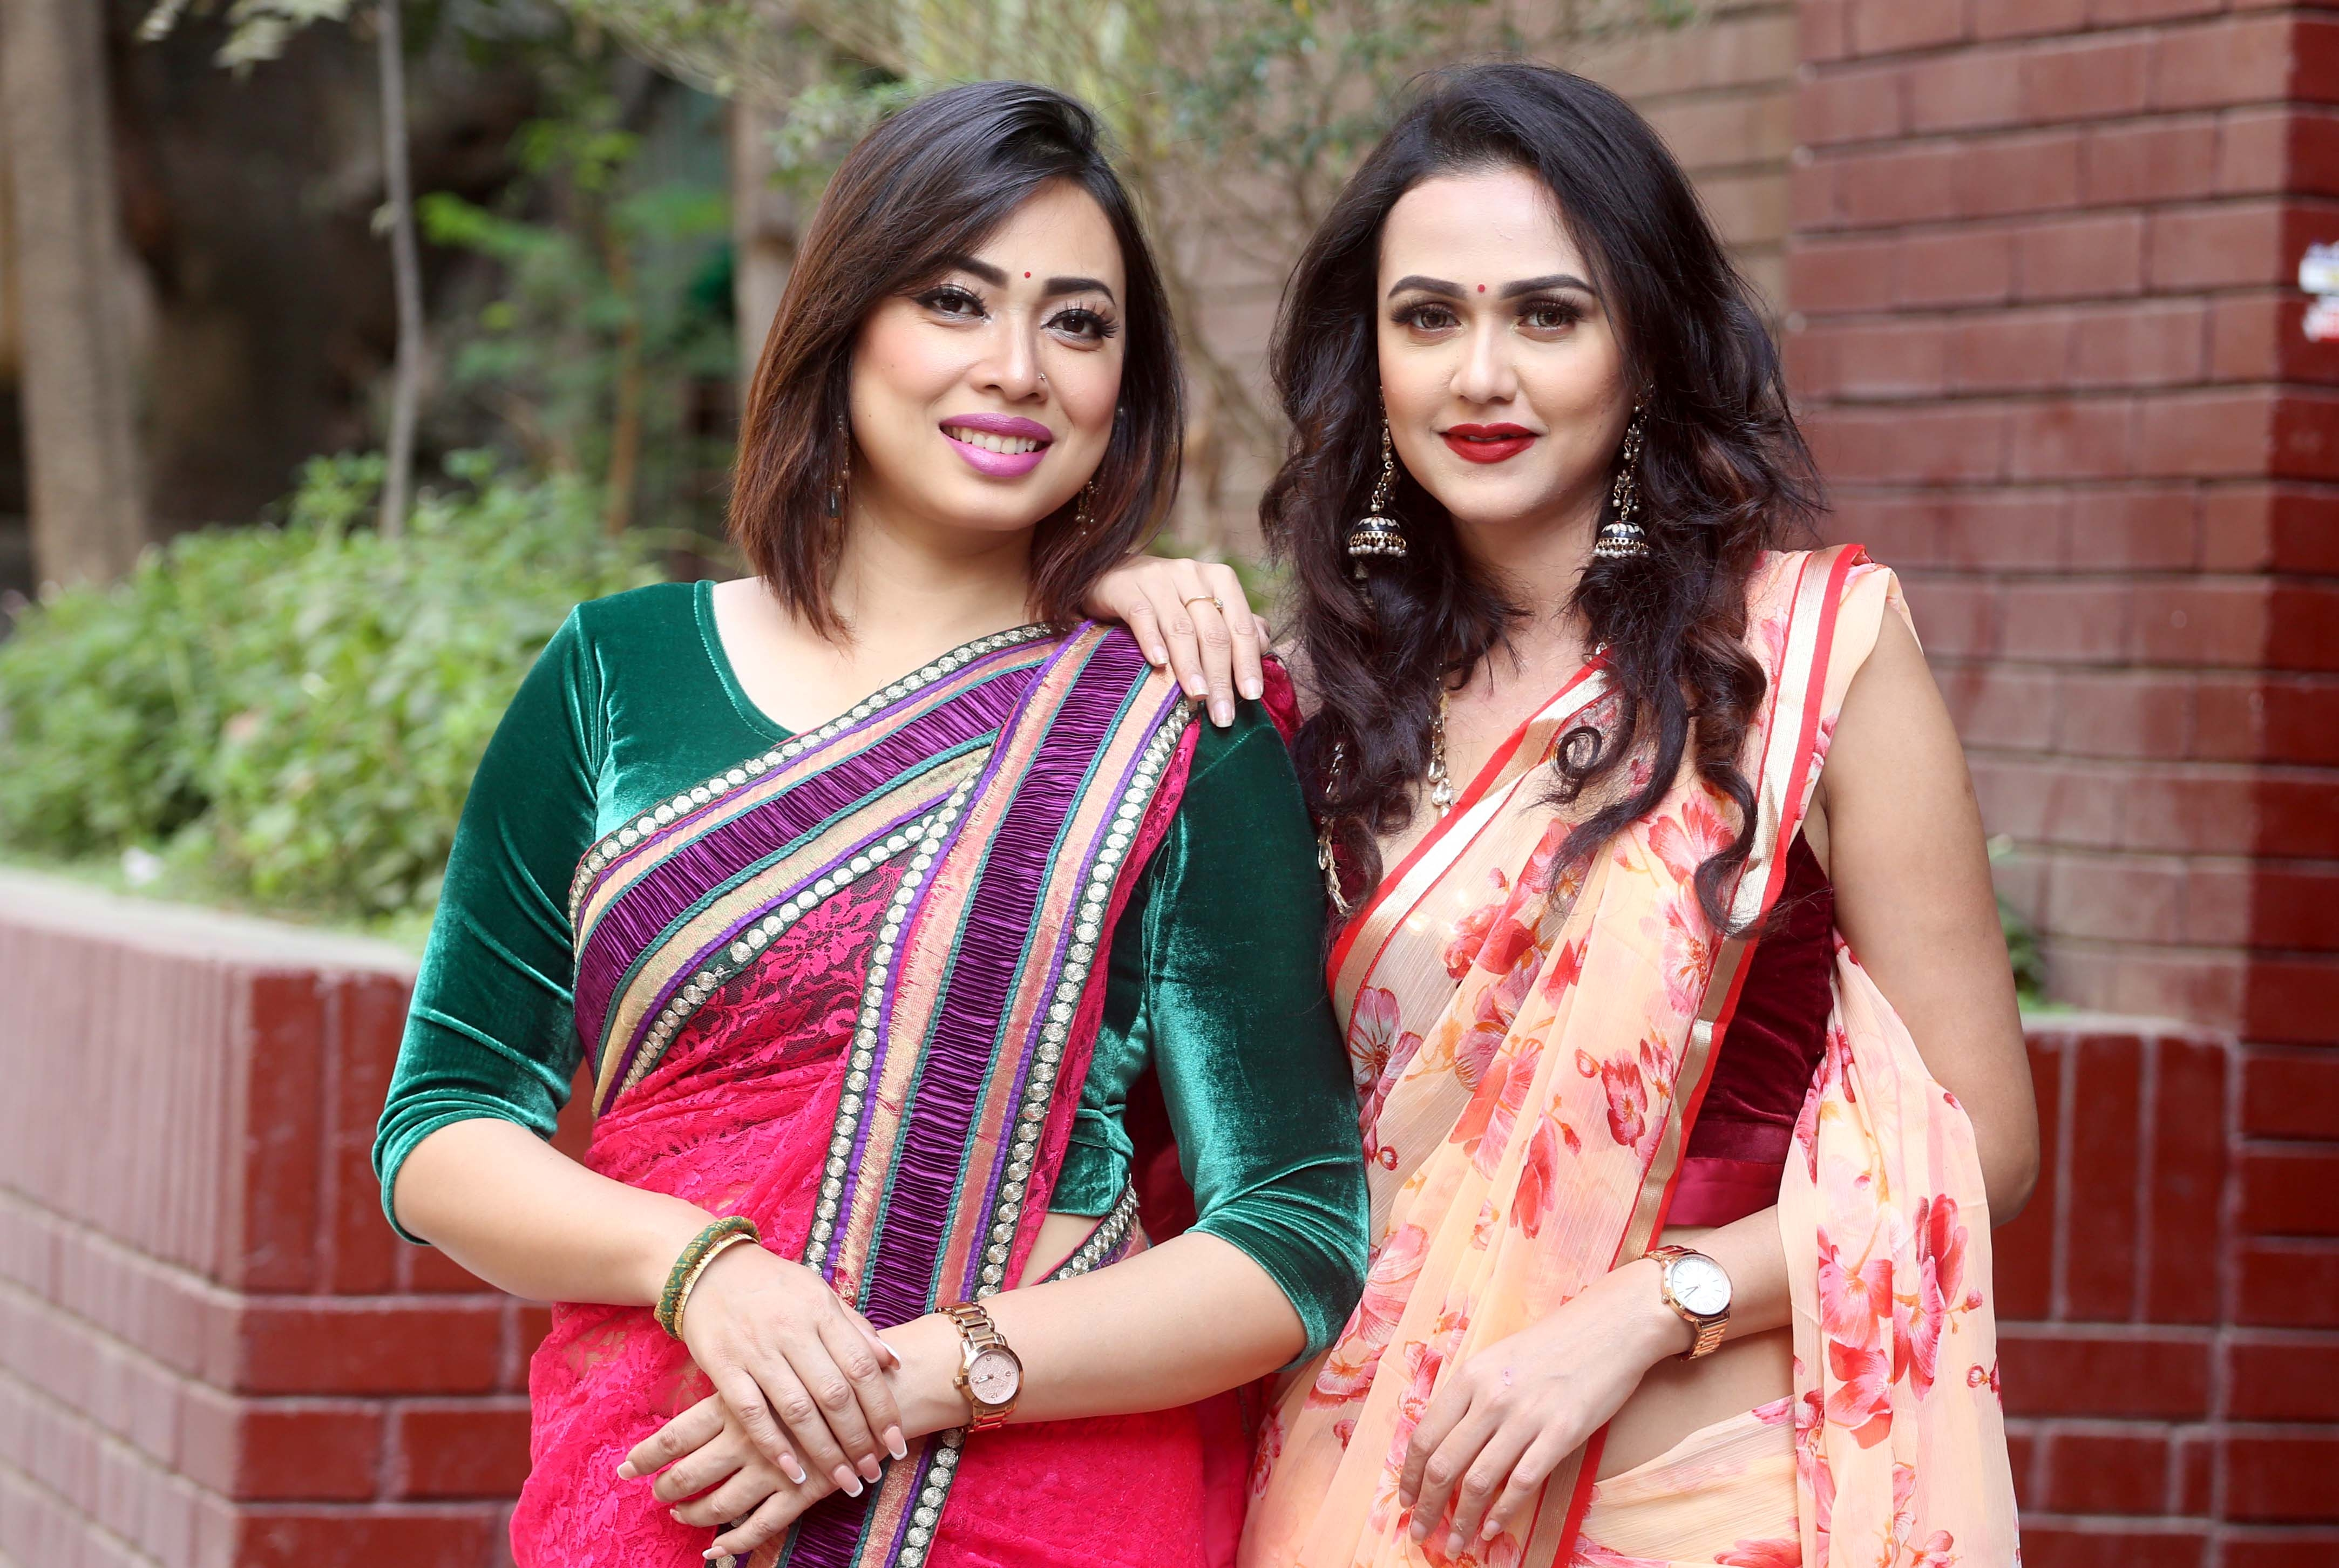 Shanu, Airin perform as judge in TV reality show